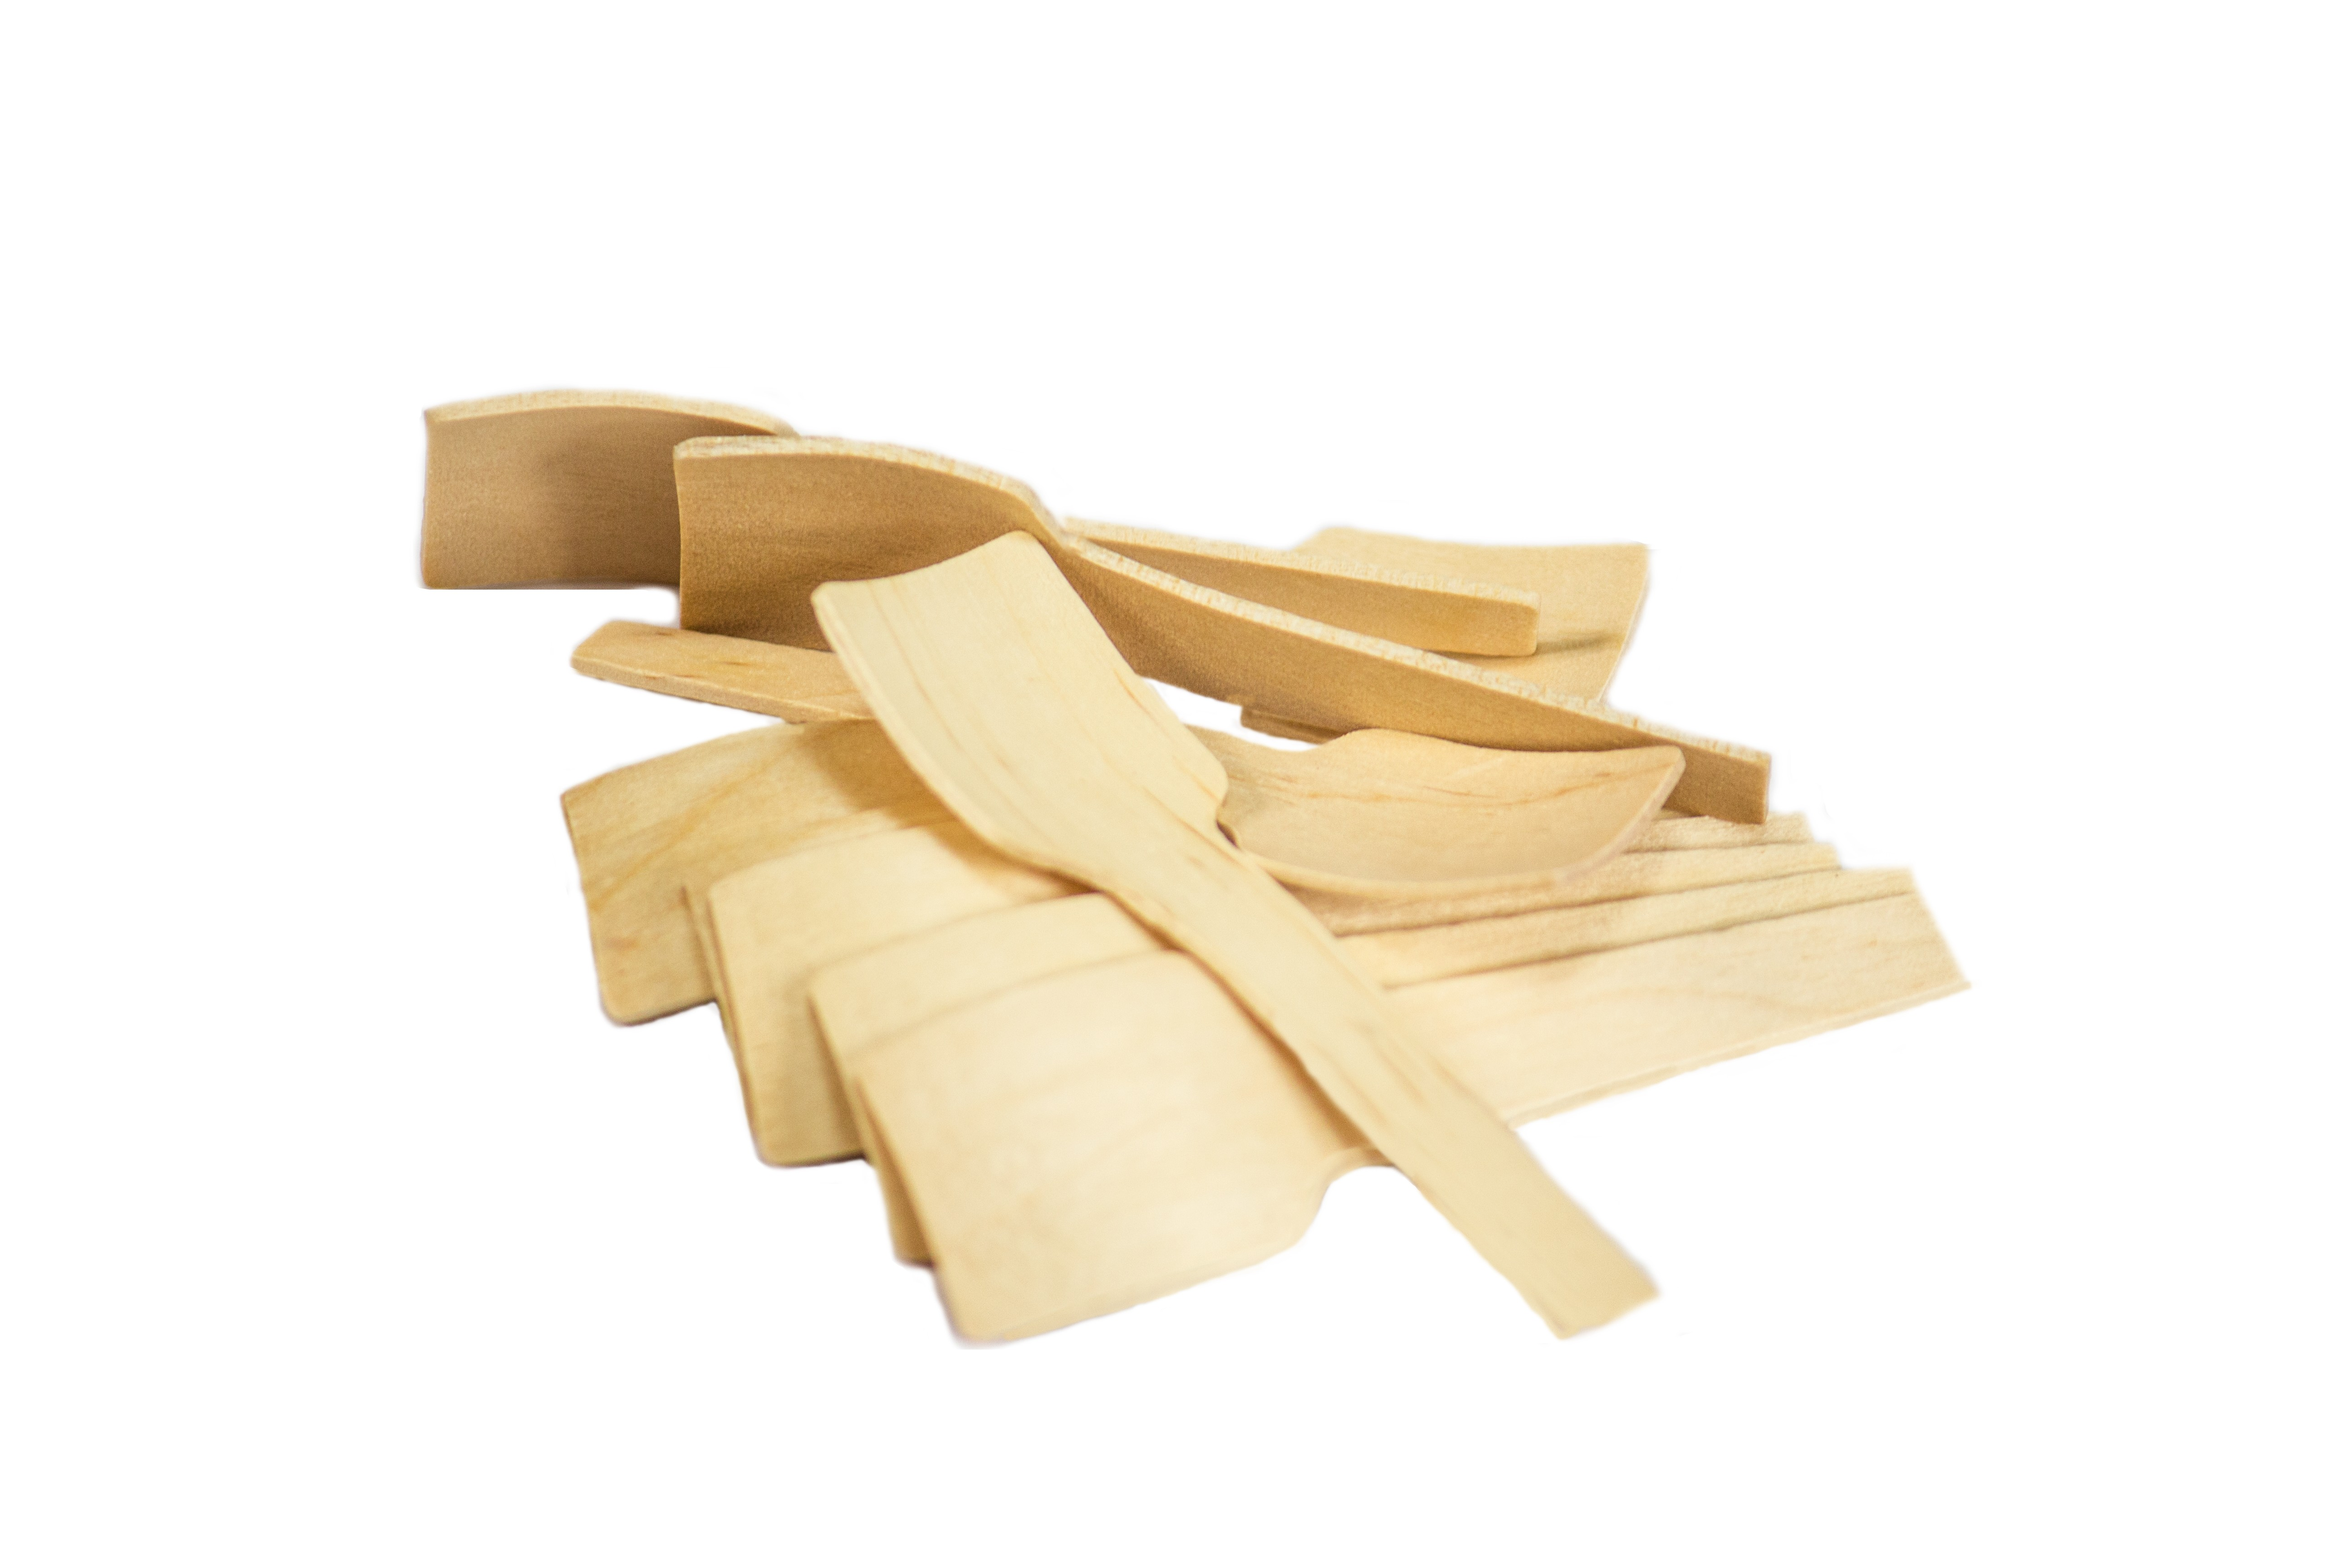 """2 3/4"""" Square Wood Taster Spoons Case of 100bags/100ct =10,000ct (Item# Green Spoon 70)"""